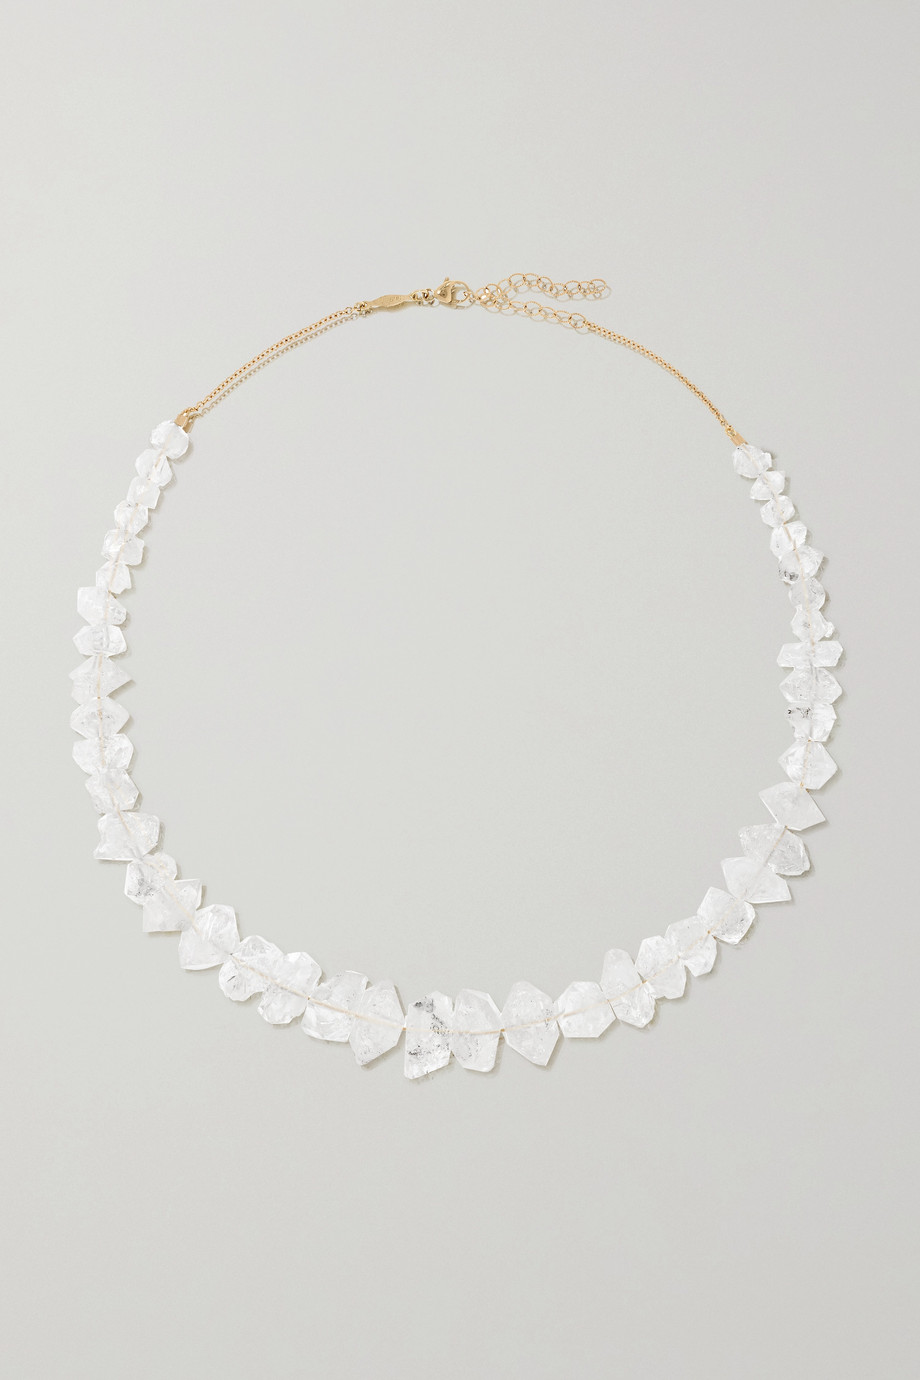 Jacquie Aiche 14-karat gold quartz necklace